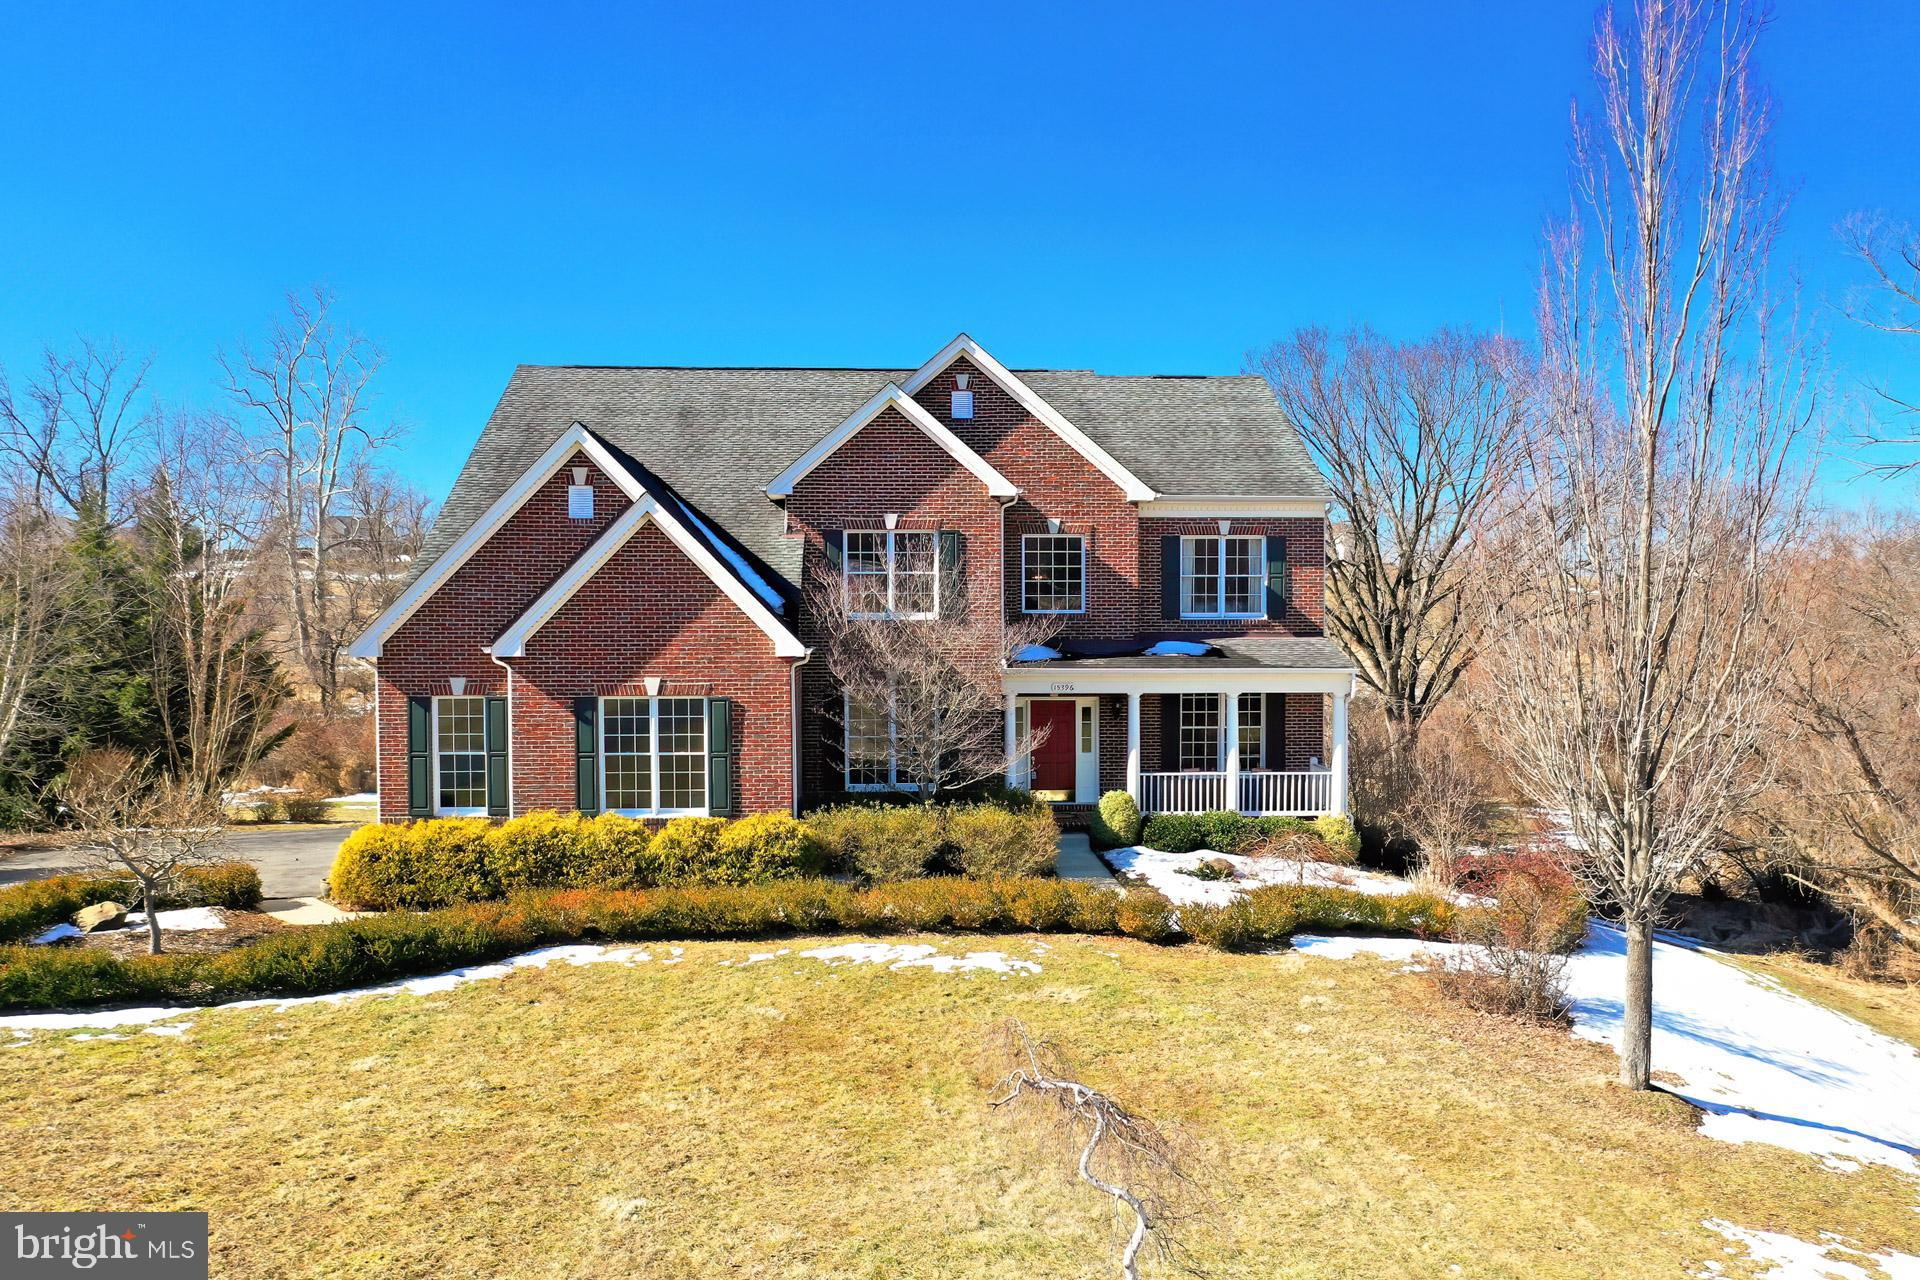 WELCOME to this BEAUTIFUL home in sought-after WATERFORD RIDGE!! You will love the almost 4,000 fini